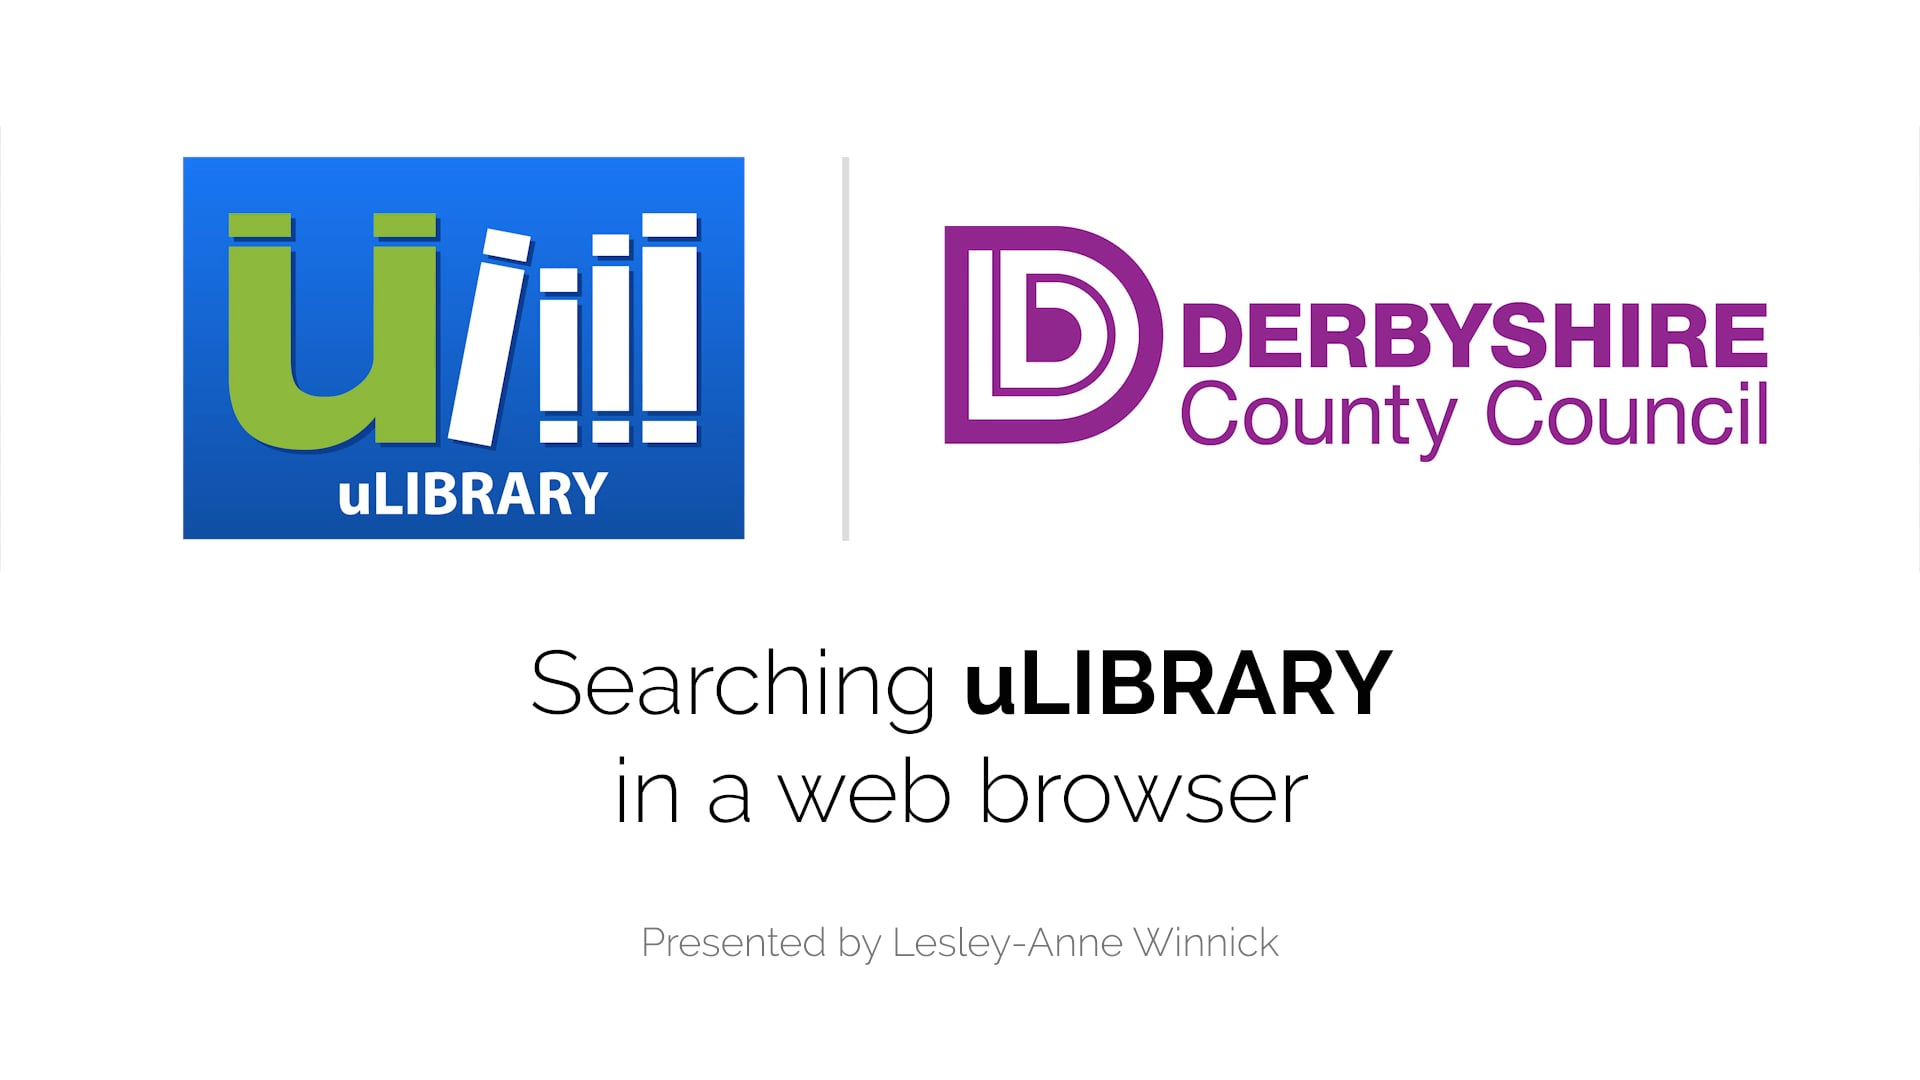 Searching uLIBRARY in a web browser